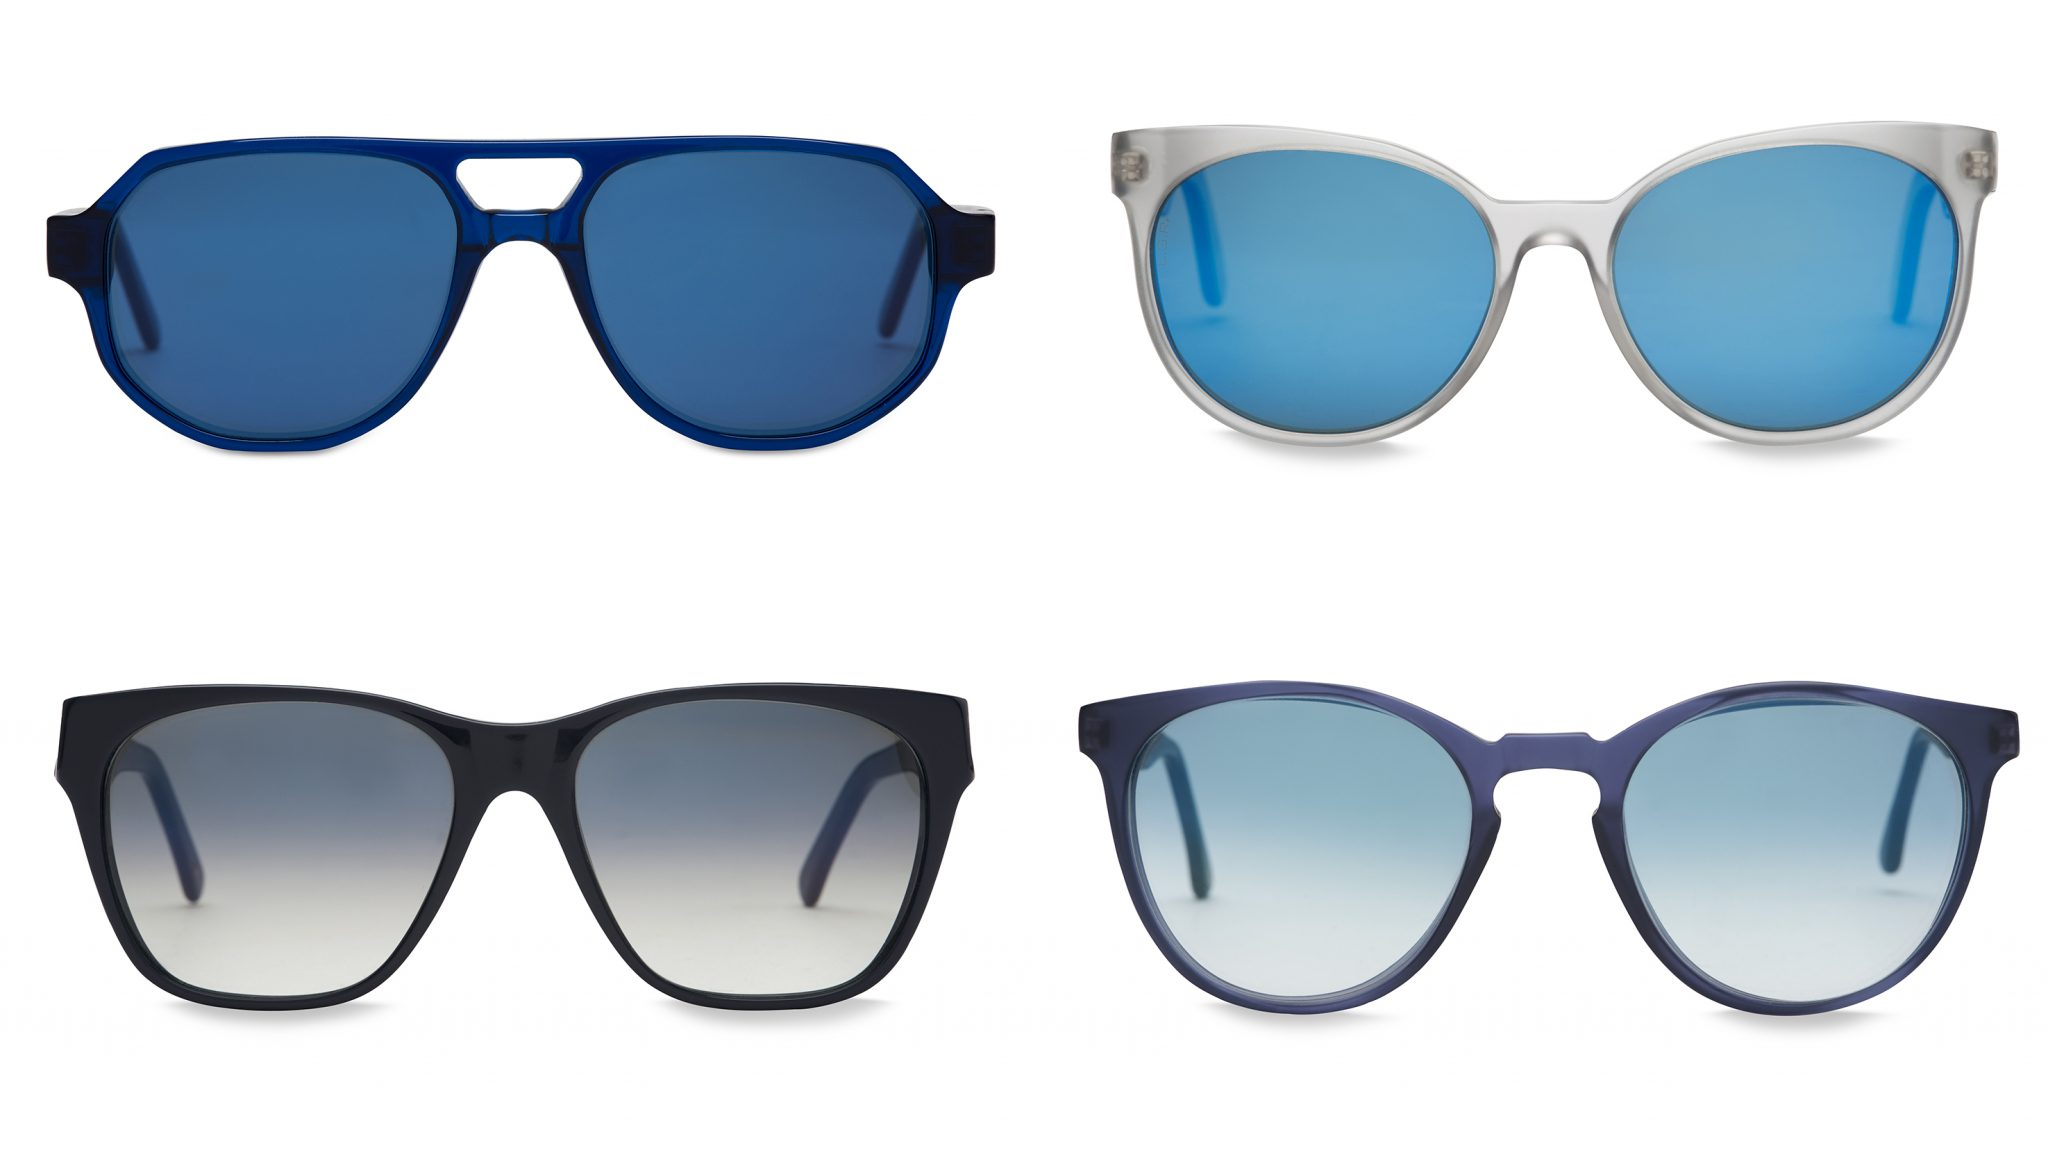 Frescobol Carioca and with L.G.R together to a Covetable Range of Sunglasses